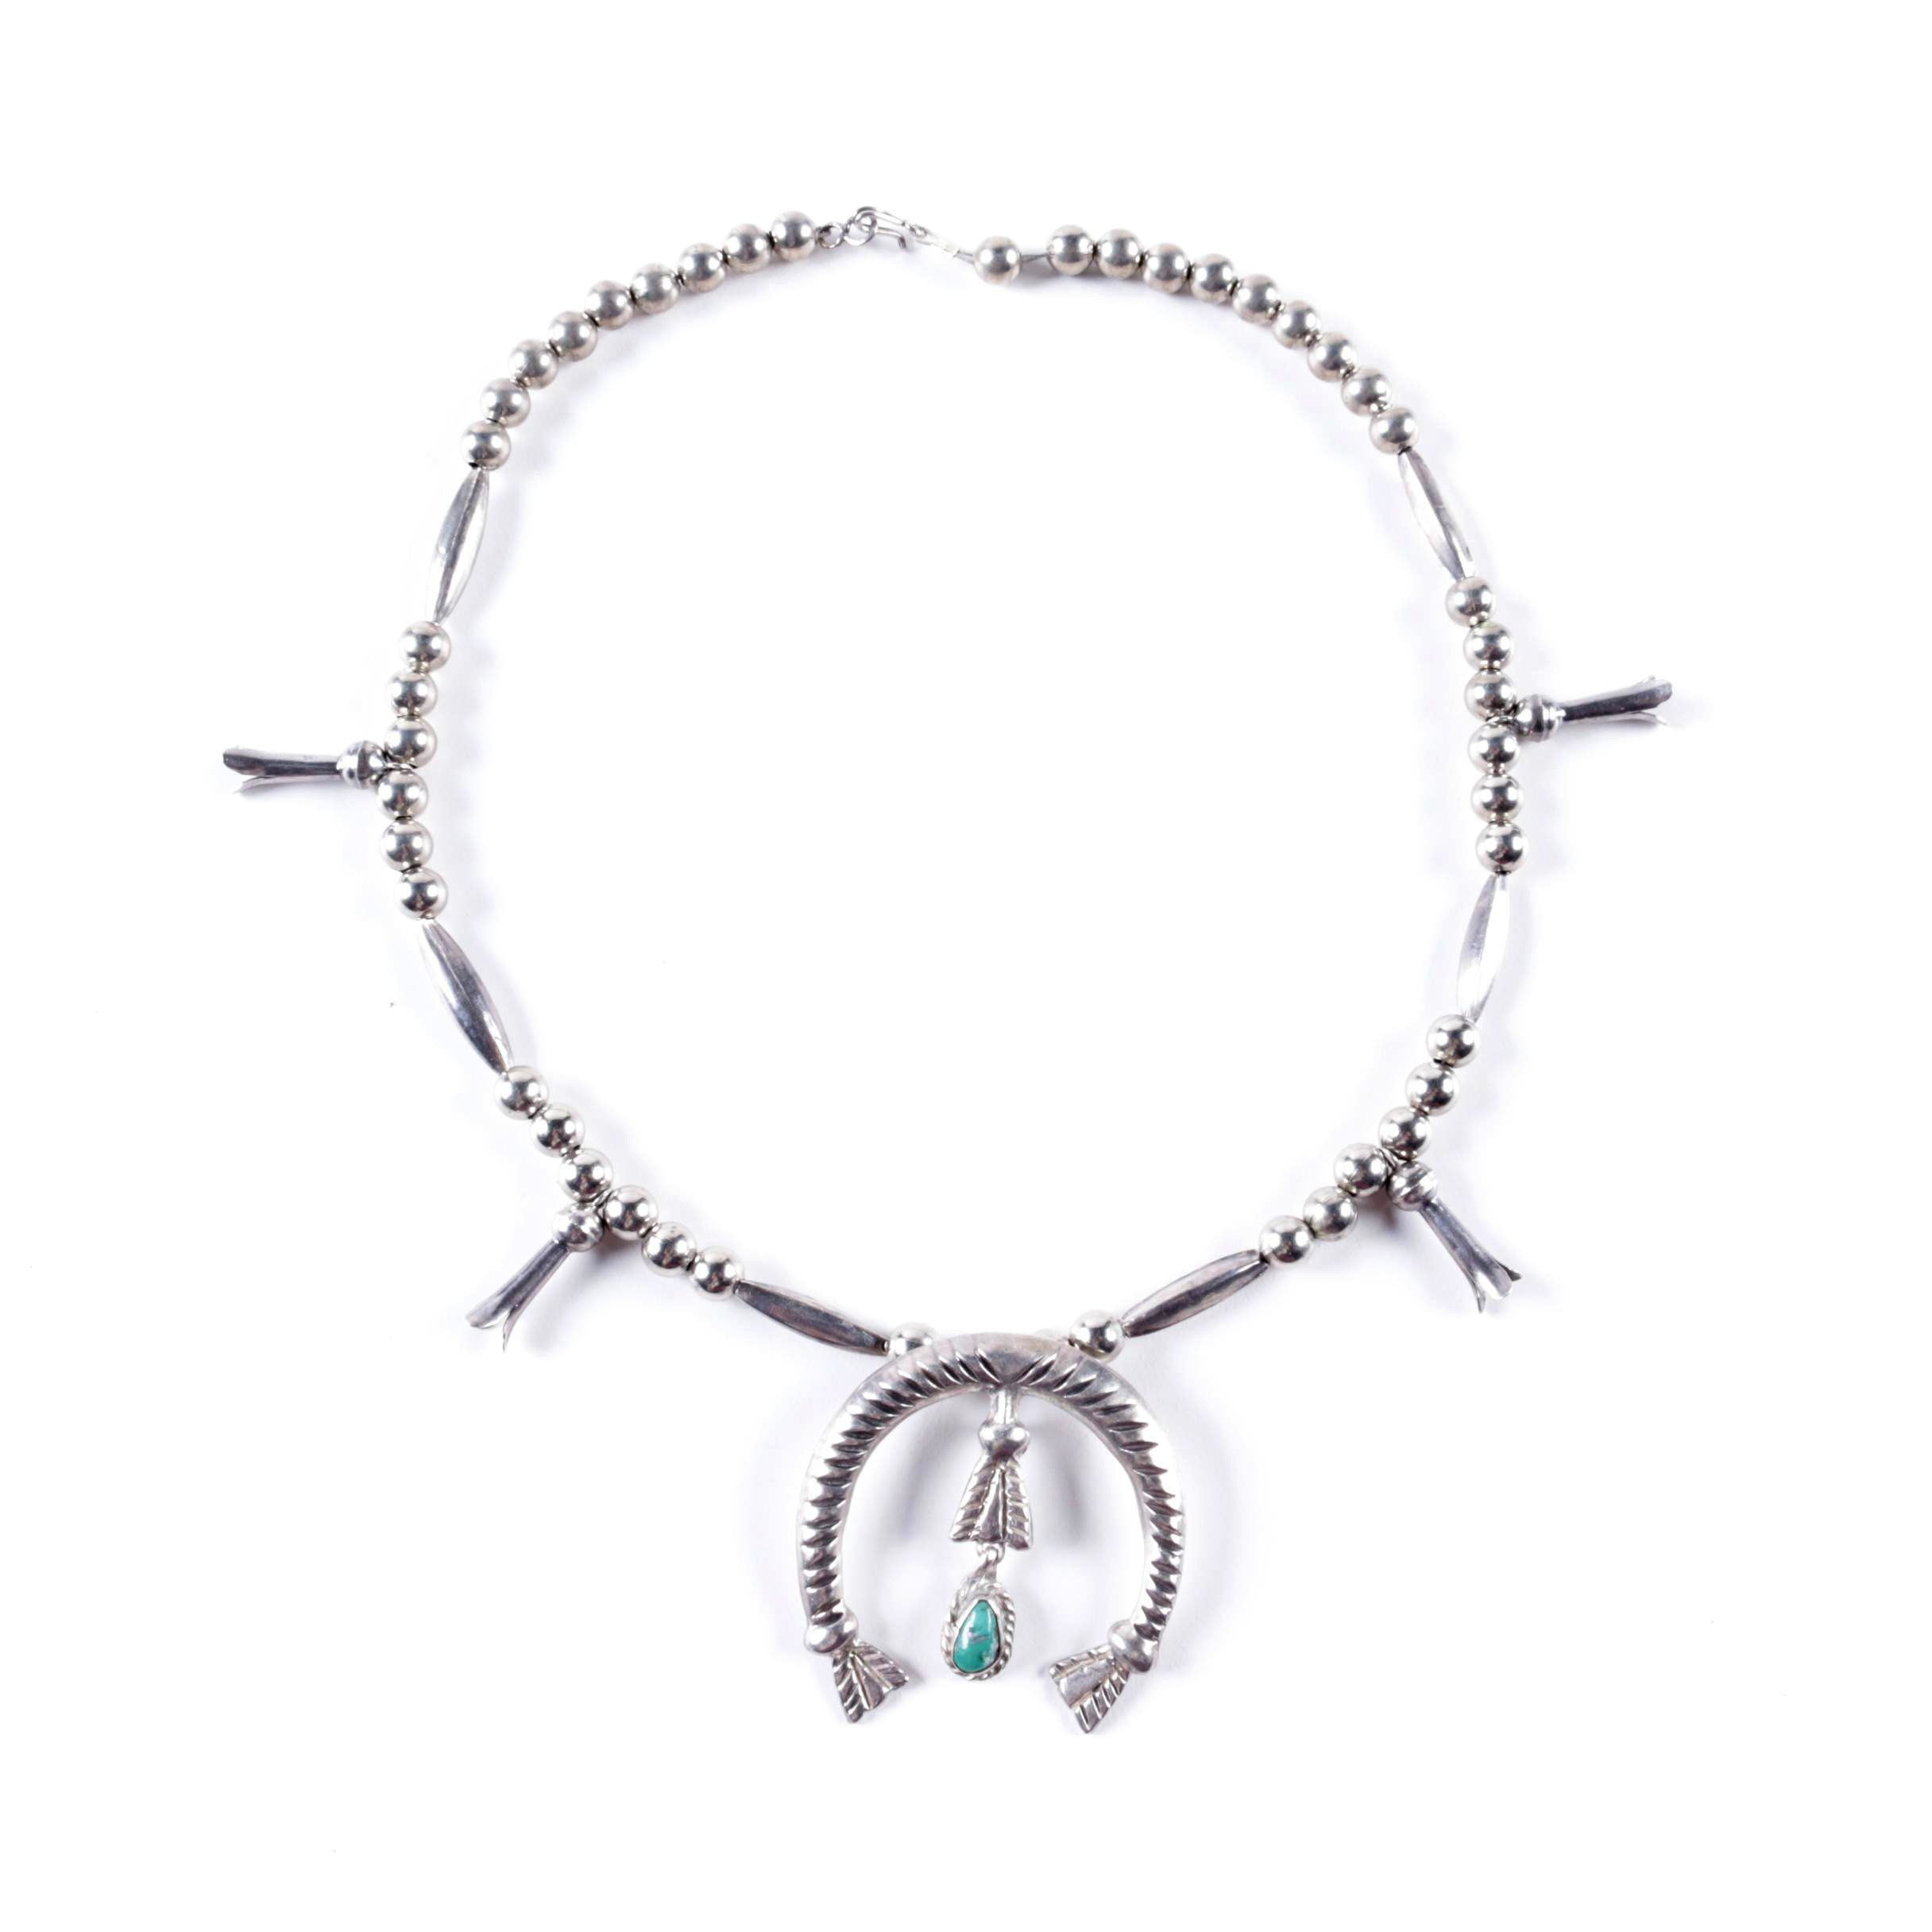 Vintage Sterling Silver and Silver Tone Squash Blossom and Turquoise Necklace